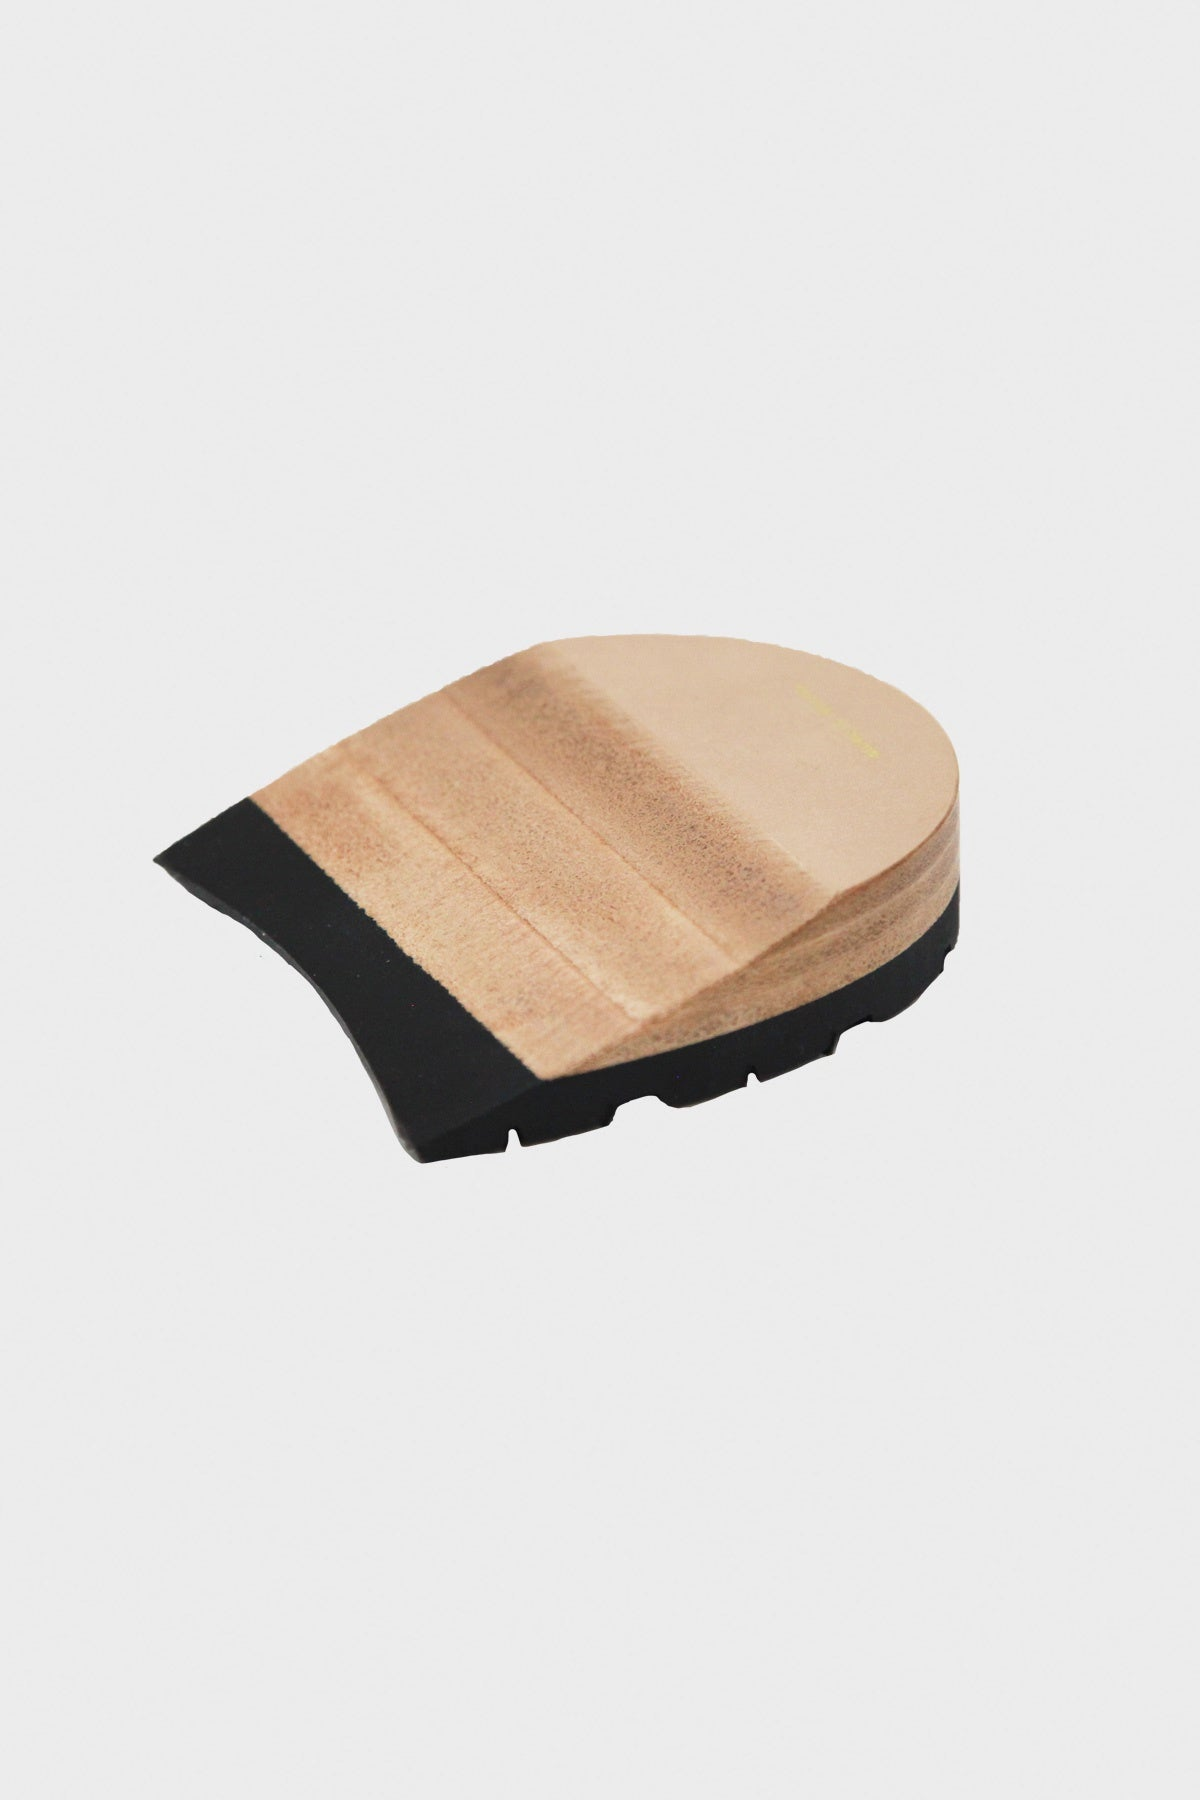 Hender Scheme - Heel Door Stopper - Natural - Canoe Club